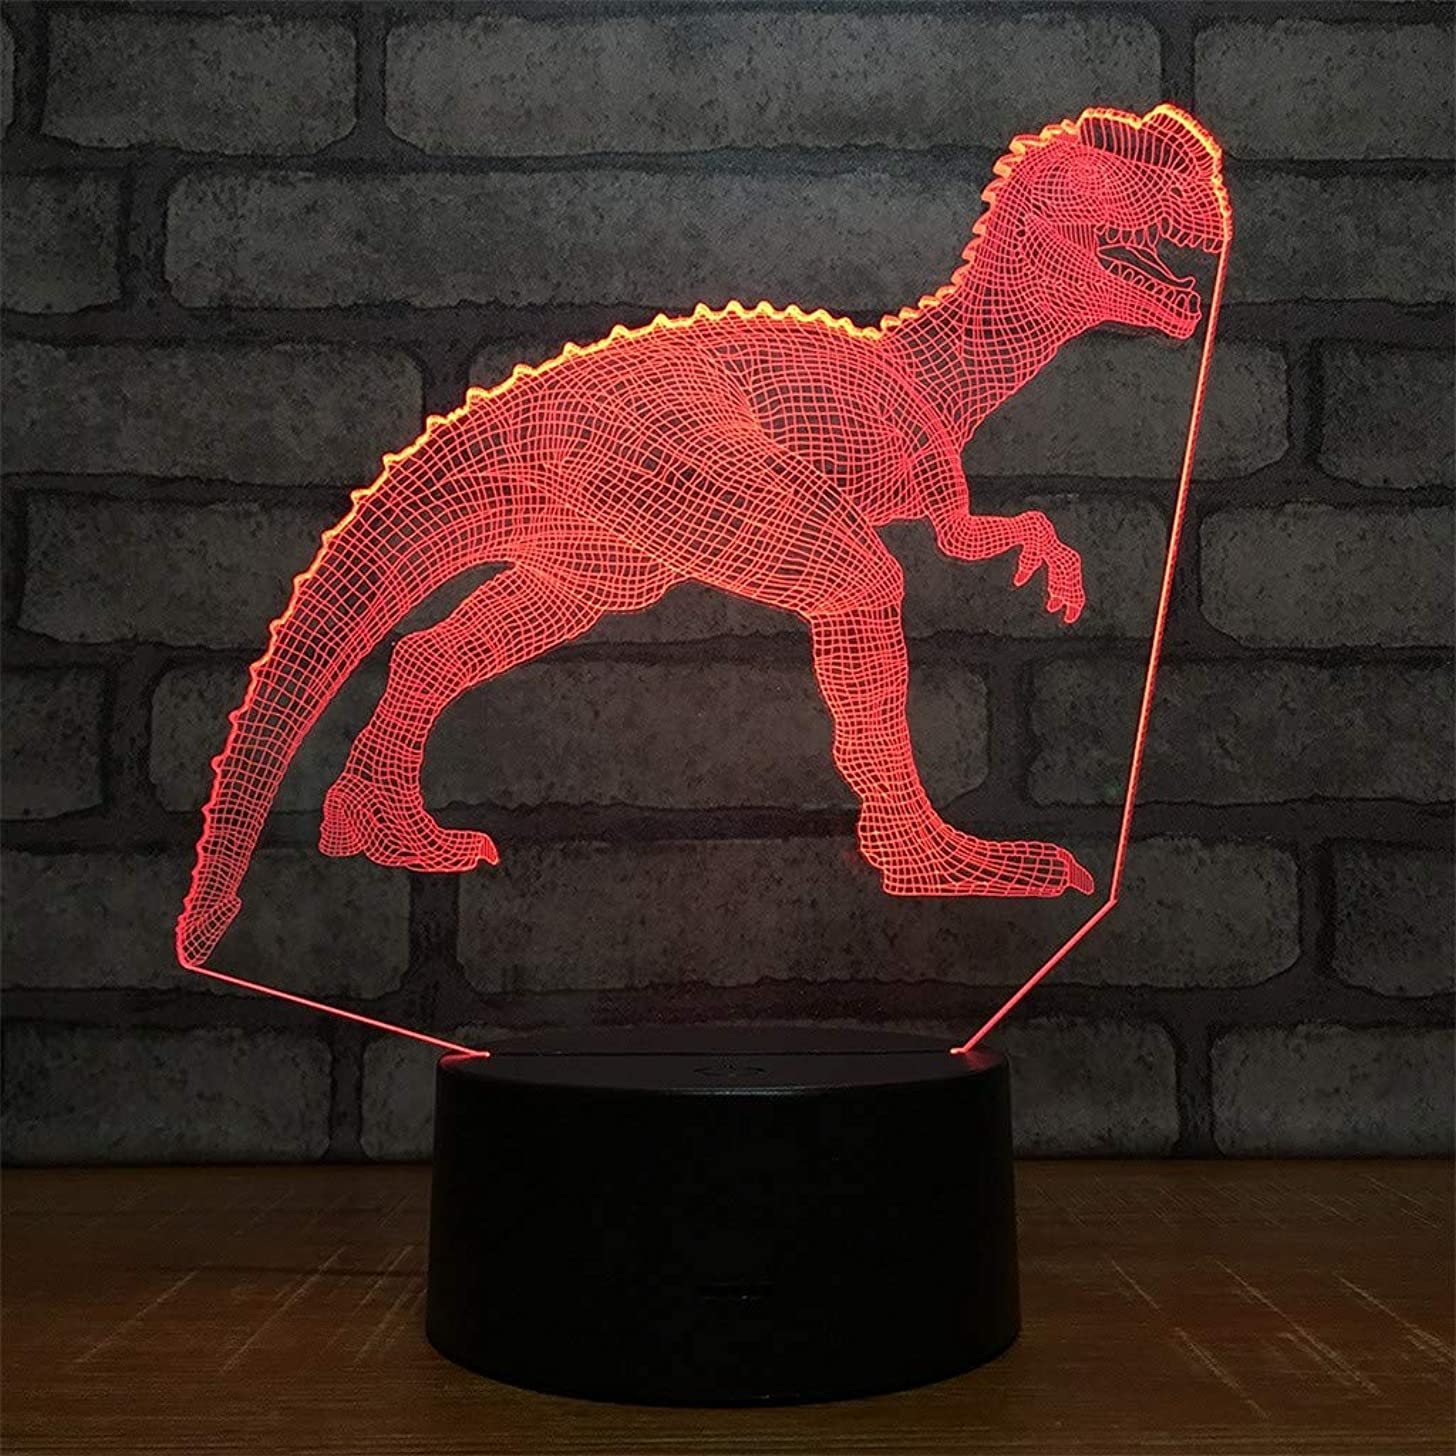 Dinosaur Night Lights for Kids T Rex Birthday Indoraptor Toy 3D Illusion Lamp Dino Gifts for Boys Home Bedroom Party Supply Decoration 7 Color Blue Velociraptor Raptor (dino3)